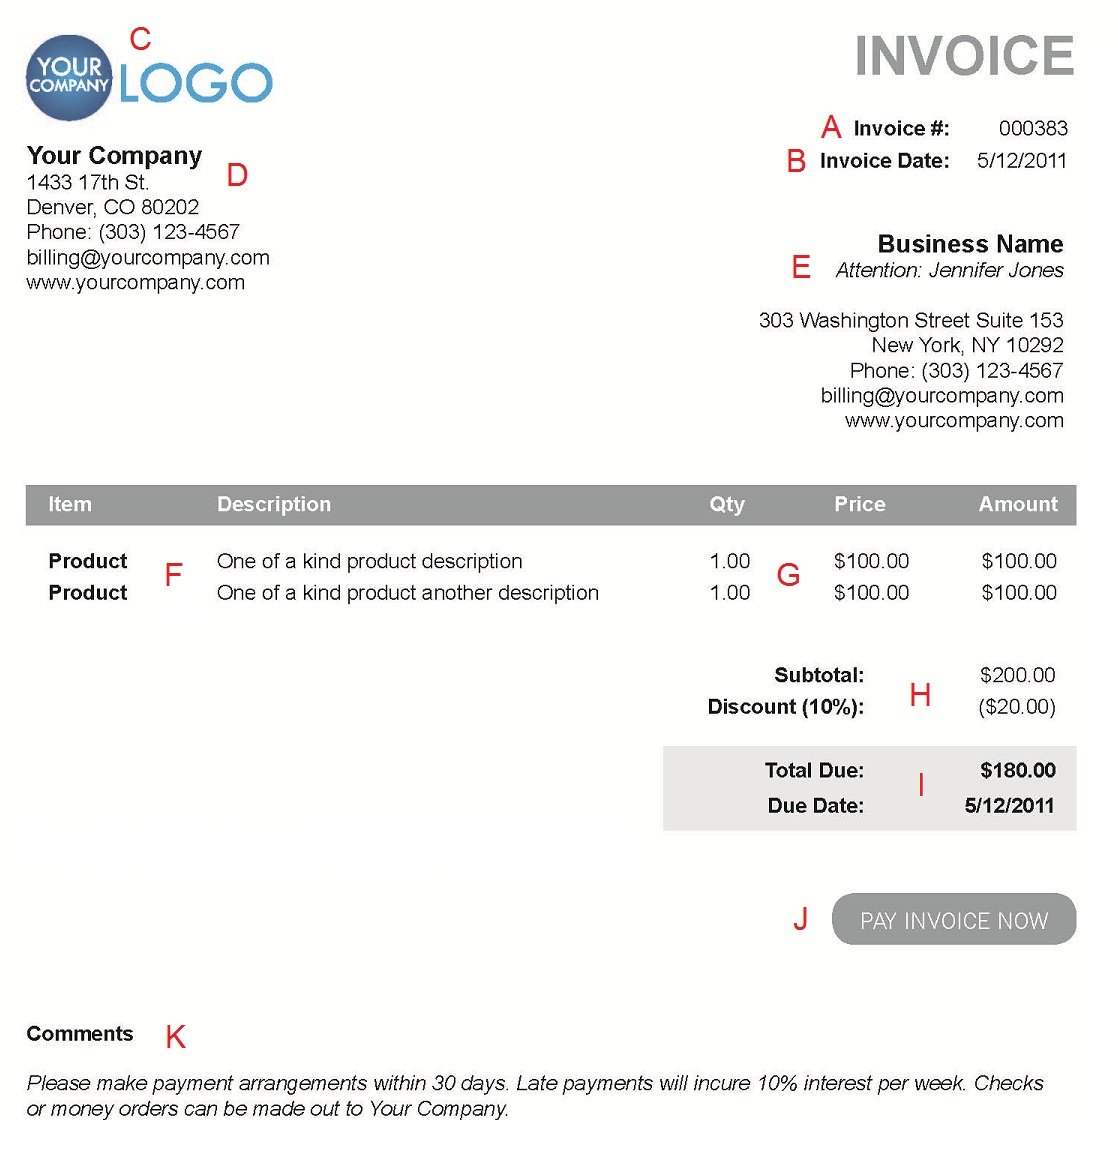 Hucareus  Winsome The  Different Sections Of An Electronic Payment Invoice With Hot A  With Cool Google Docs Templates Invoice Also Profoma Invoice In Addition Invoice To And Sales Receipt Vs Invoice As Well As Acura Mdx Invoice Additionally Automobile Invoice Prices From Paysimplecom With Hucareus  Hot The  Different Sections Of An Electronic Payment Invoice With Cool A  And Winsome Google Docs Templates Invoice Also Profoma Invoice In Addition Invoice To From Paysimplecom